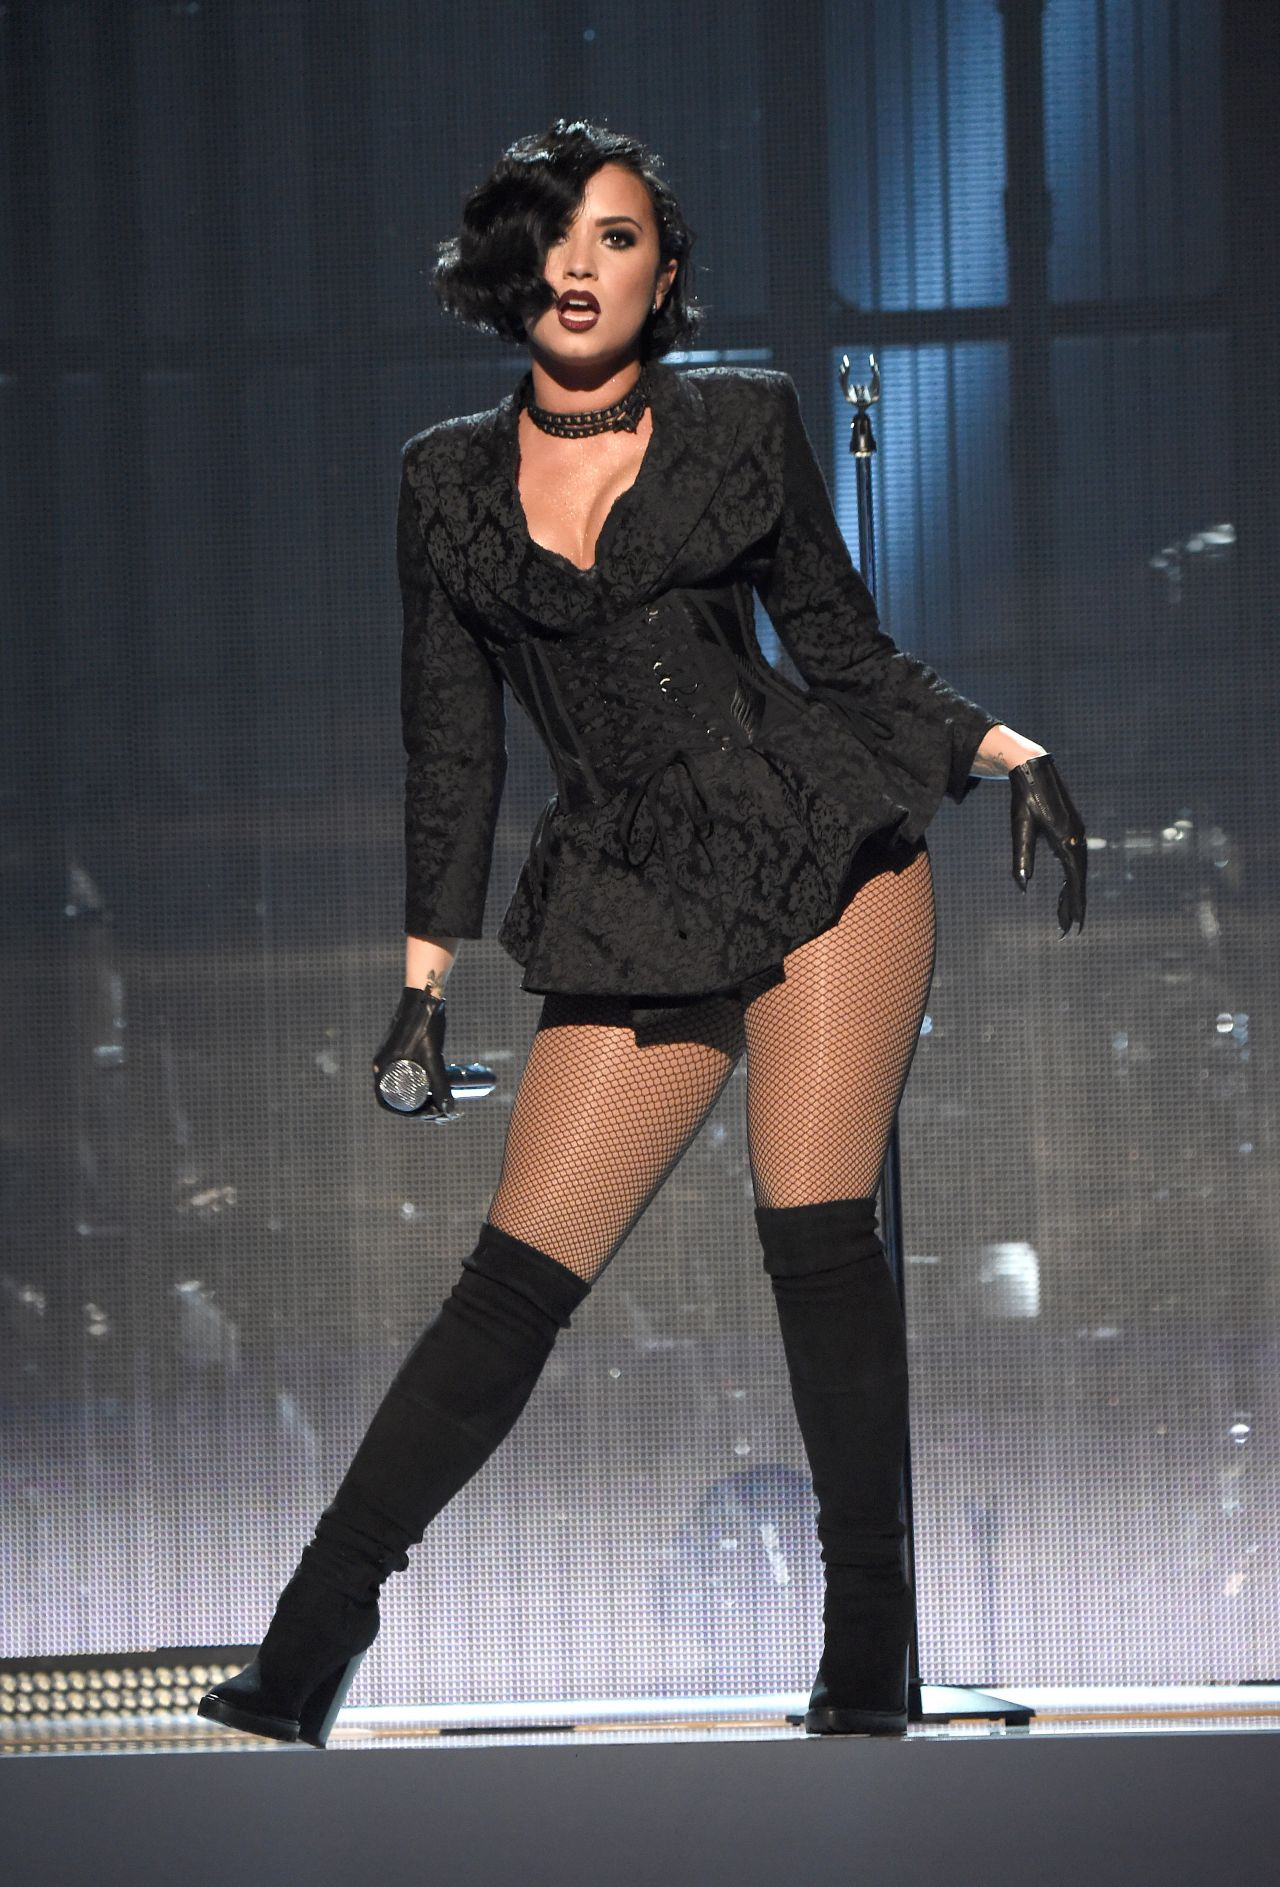 2015 Los Angeles Film Festival: Demi Lovato Performs At 2015 American Music Awards In Los